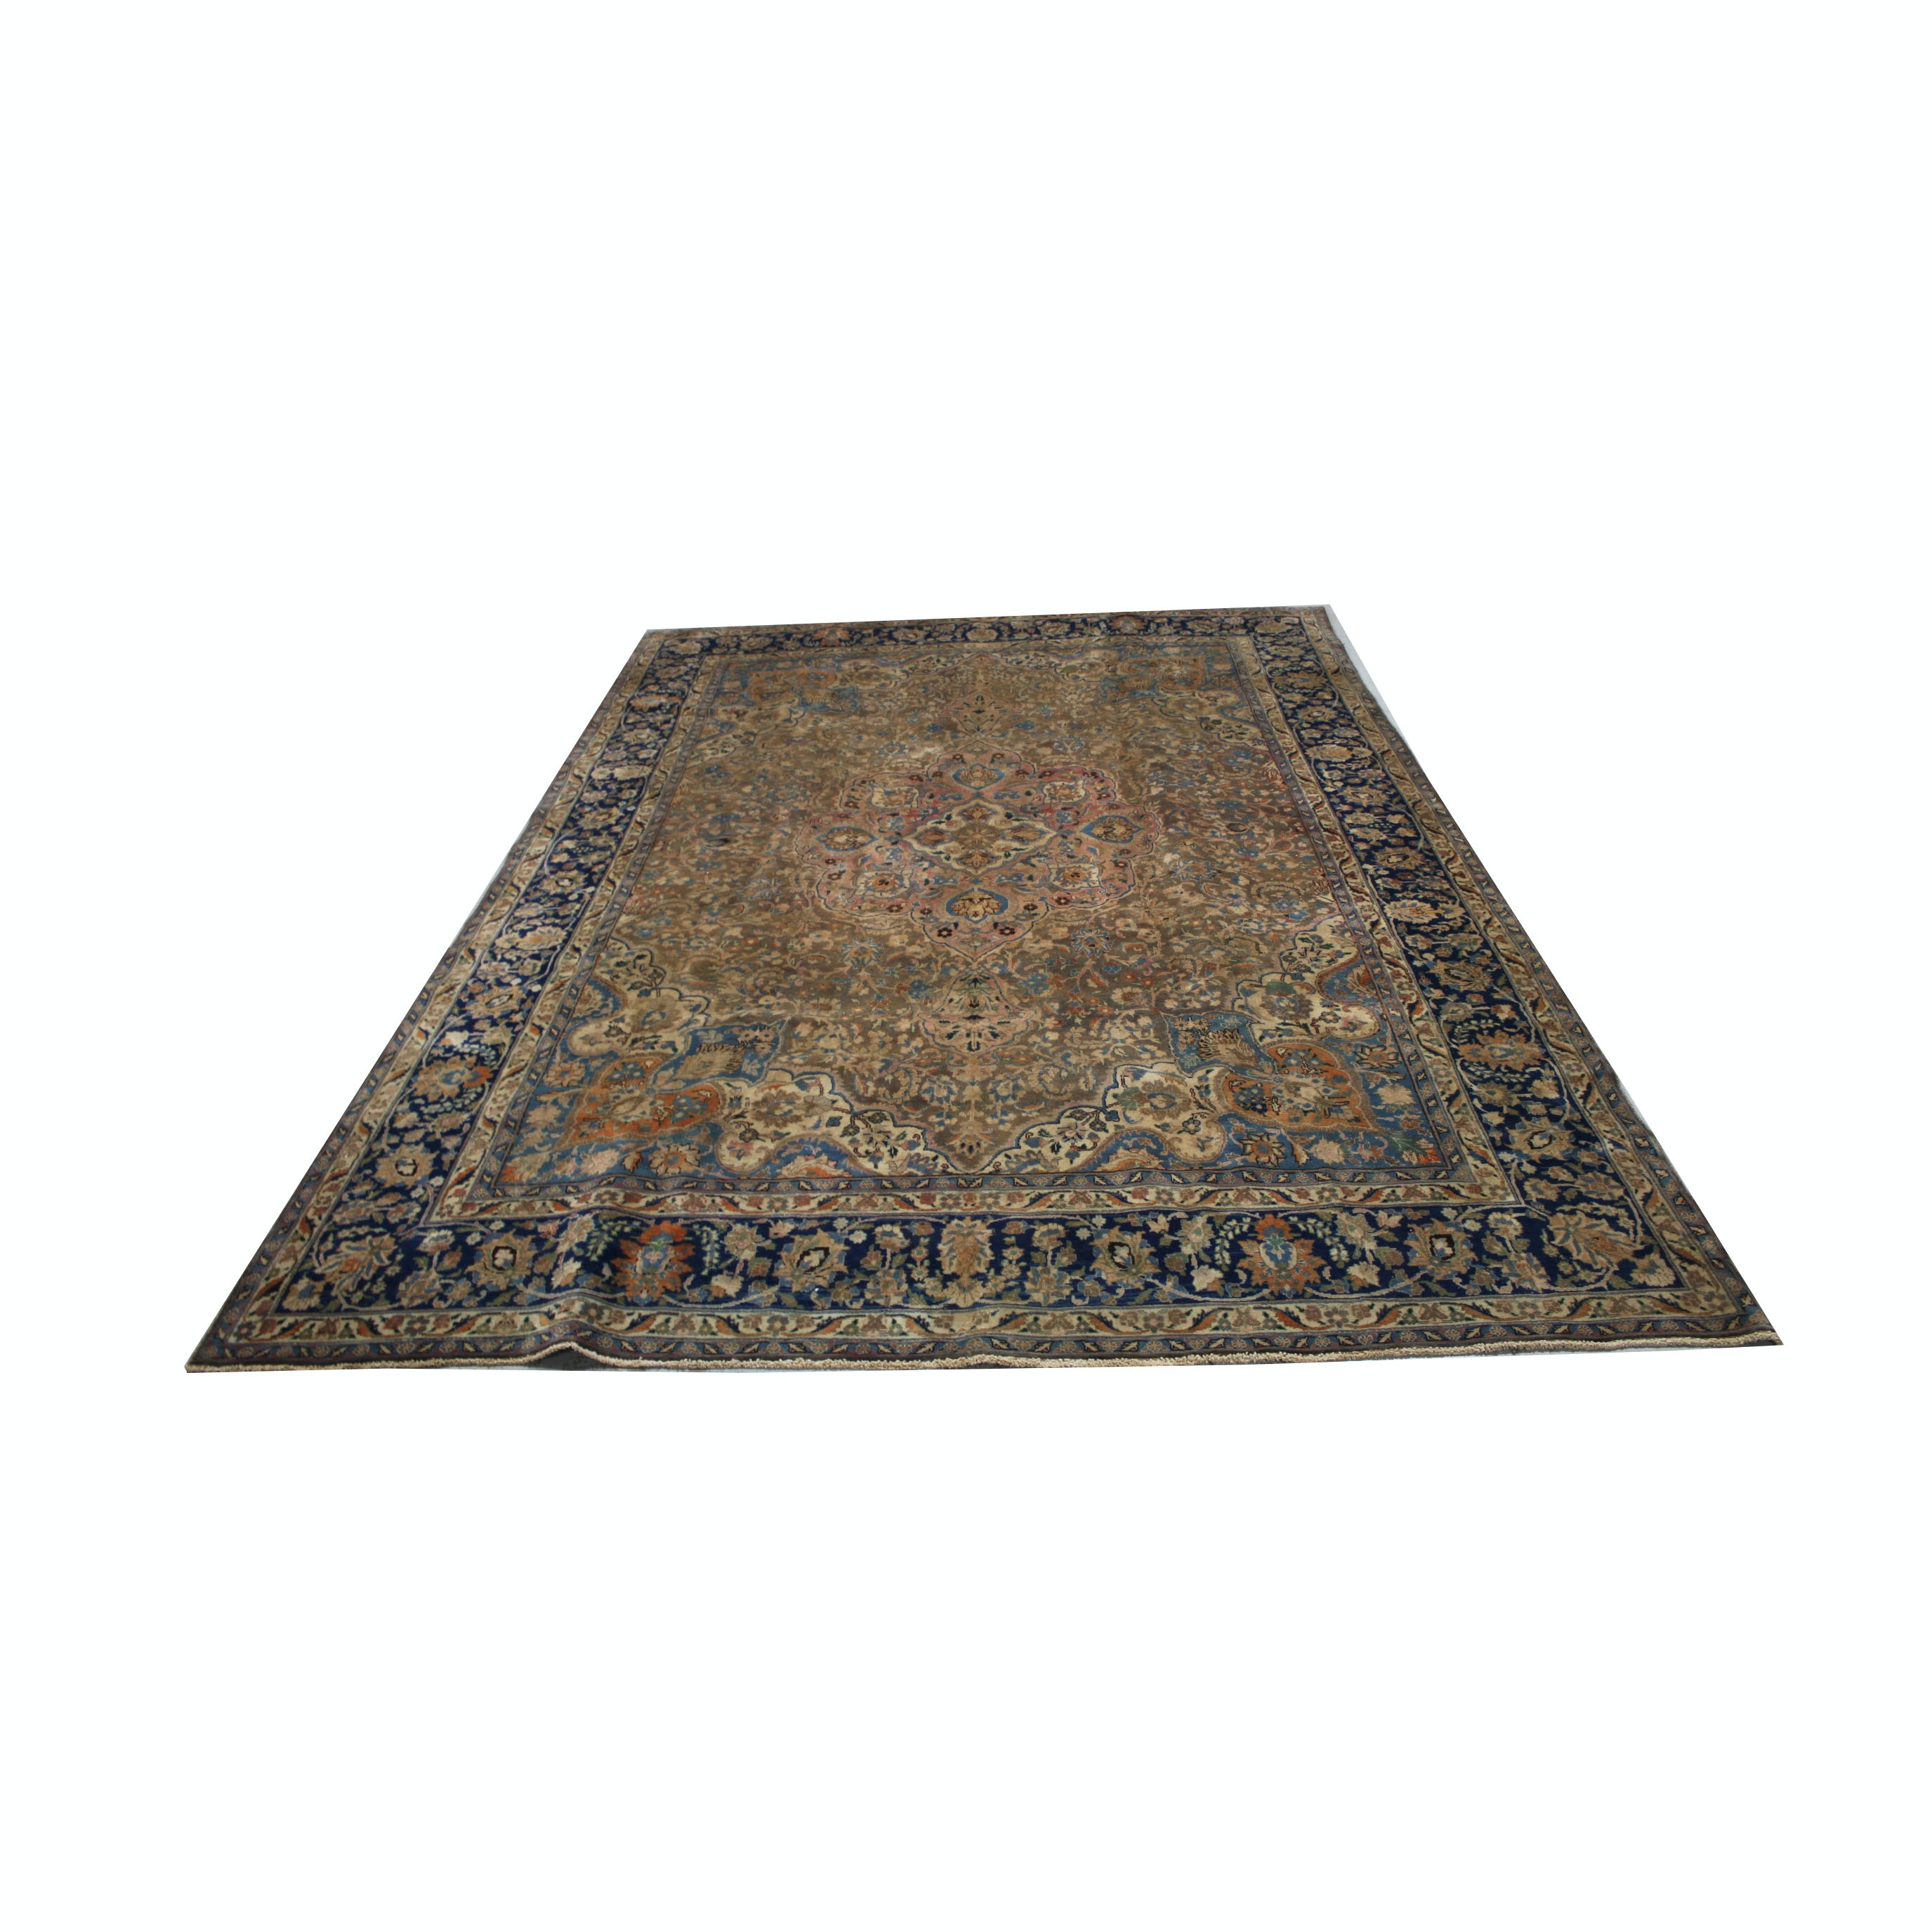 Large Vintage Hand-Knotted Persian Qum Area Rug